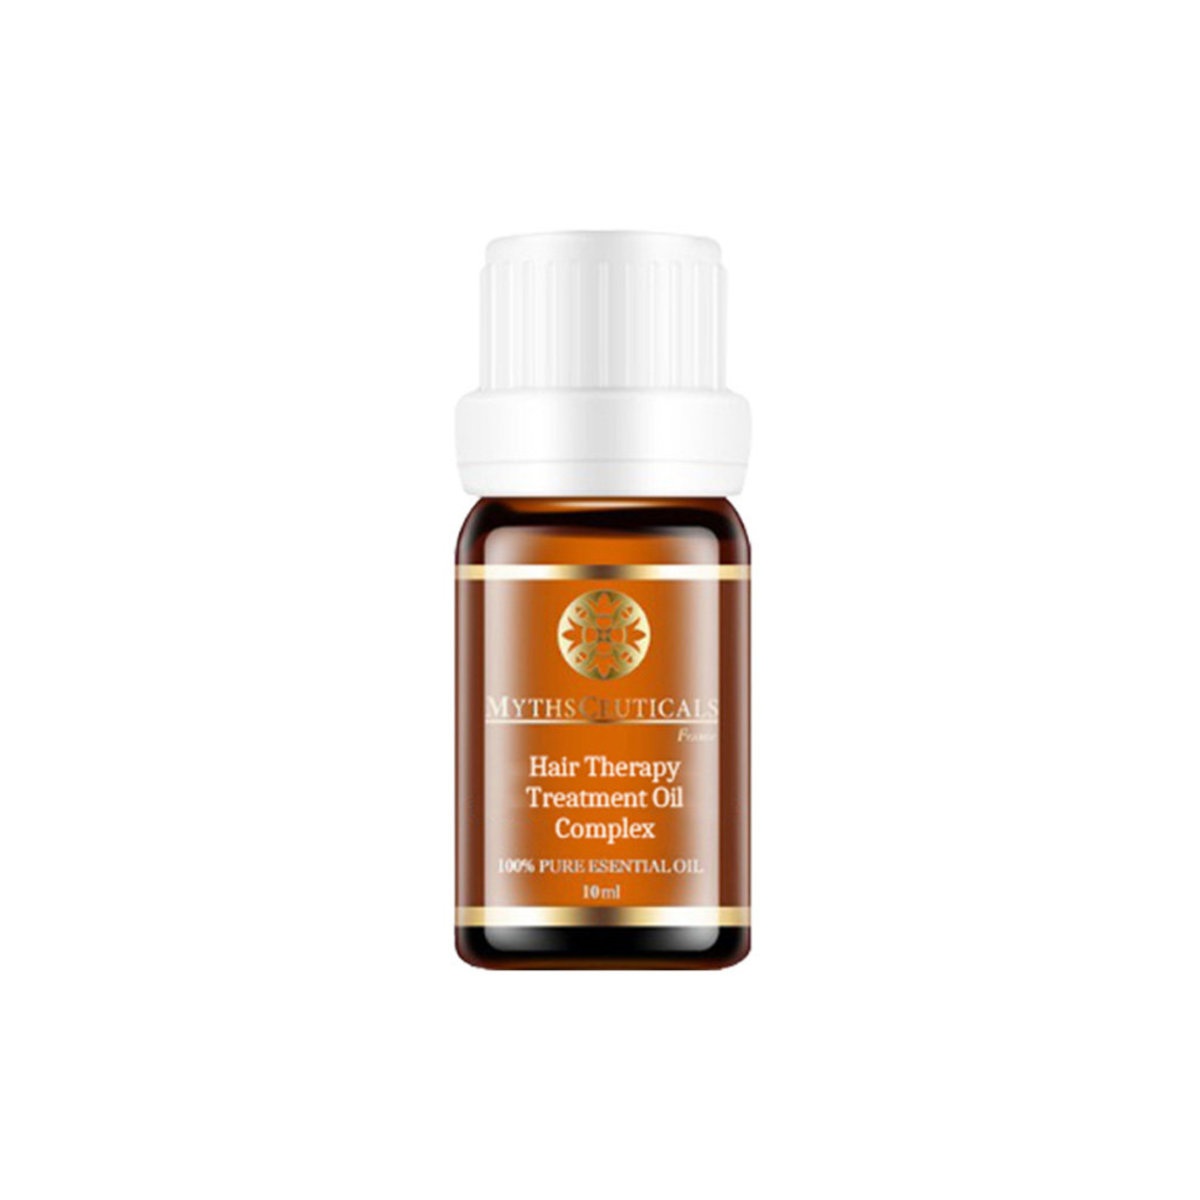 Hair Therapy Treatment Oil Complex 10ml